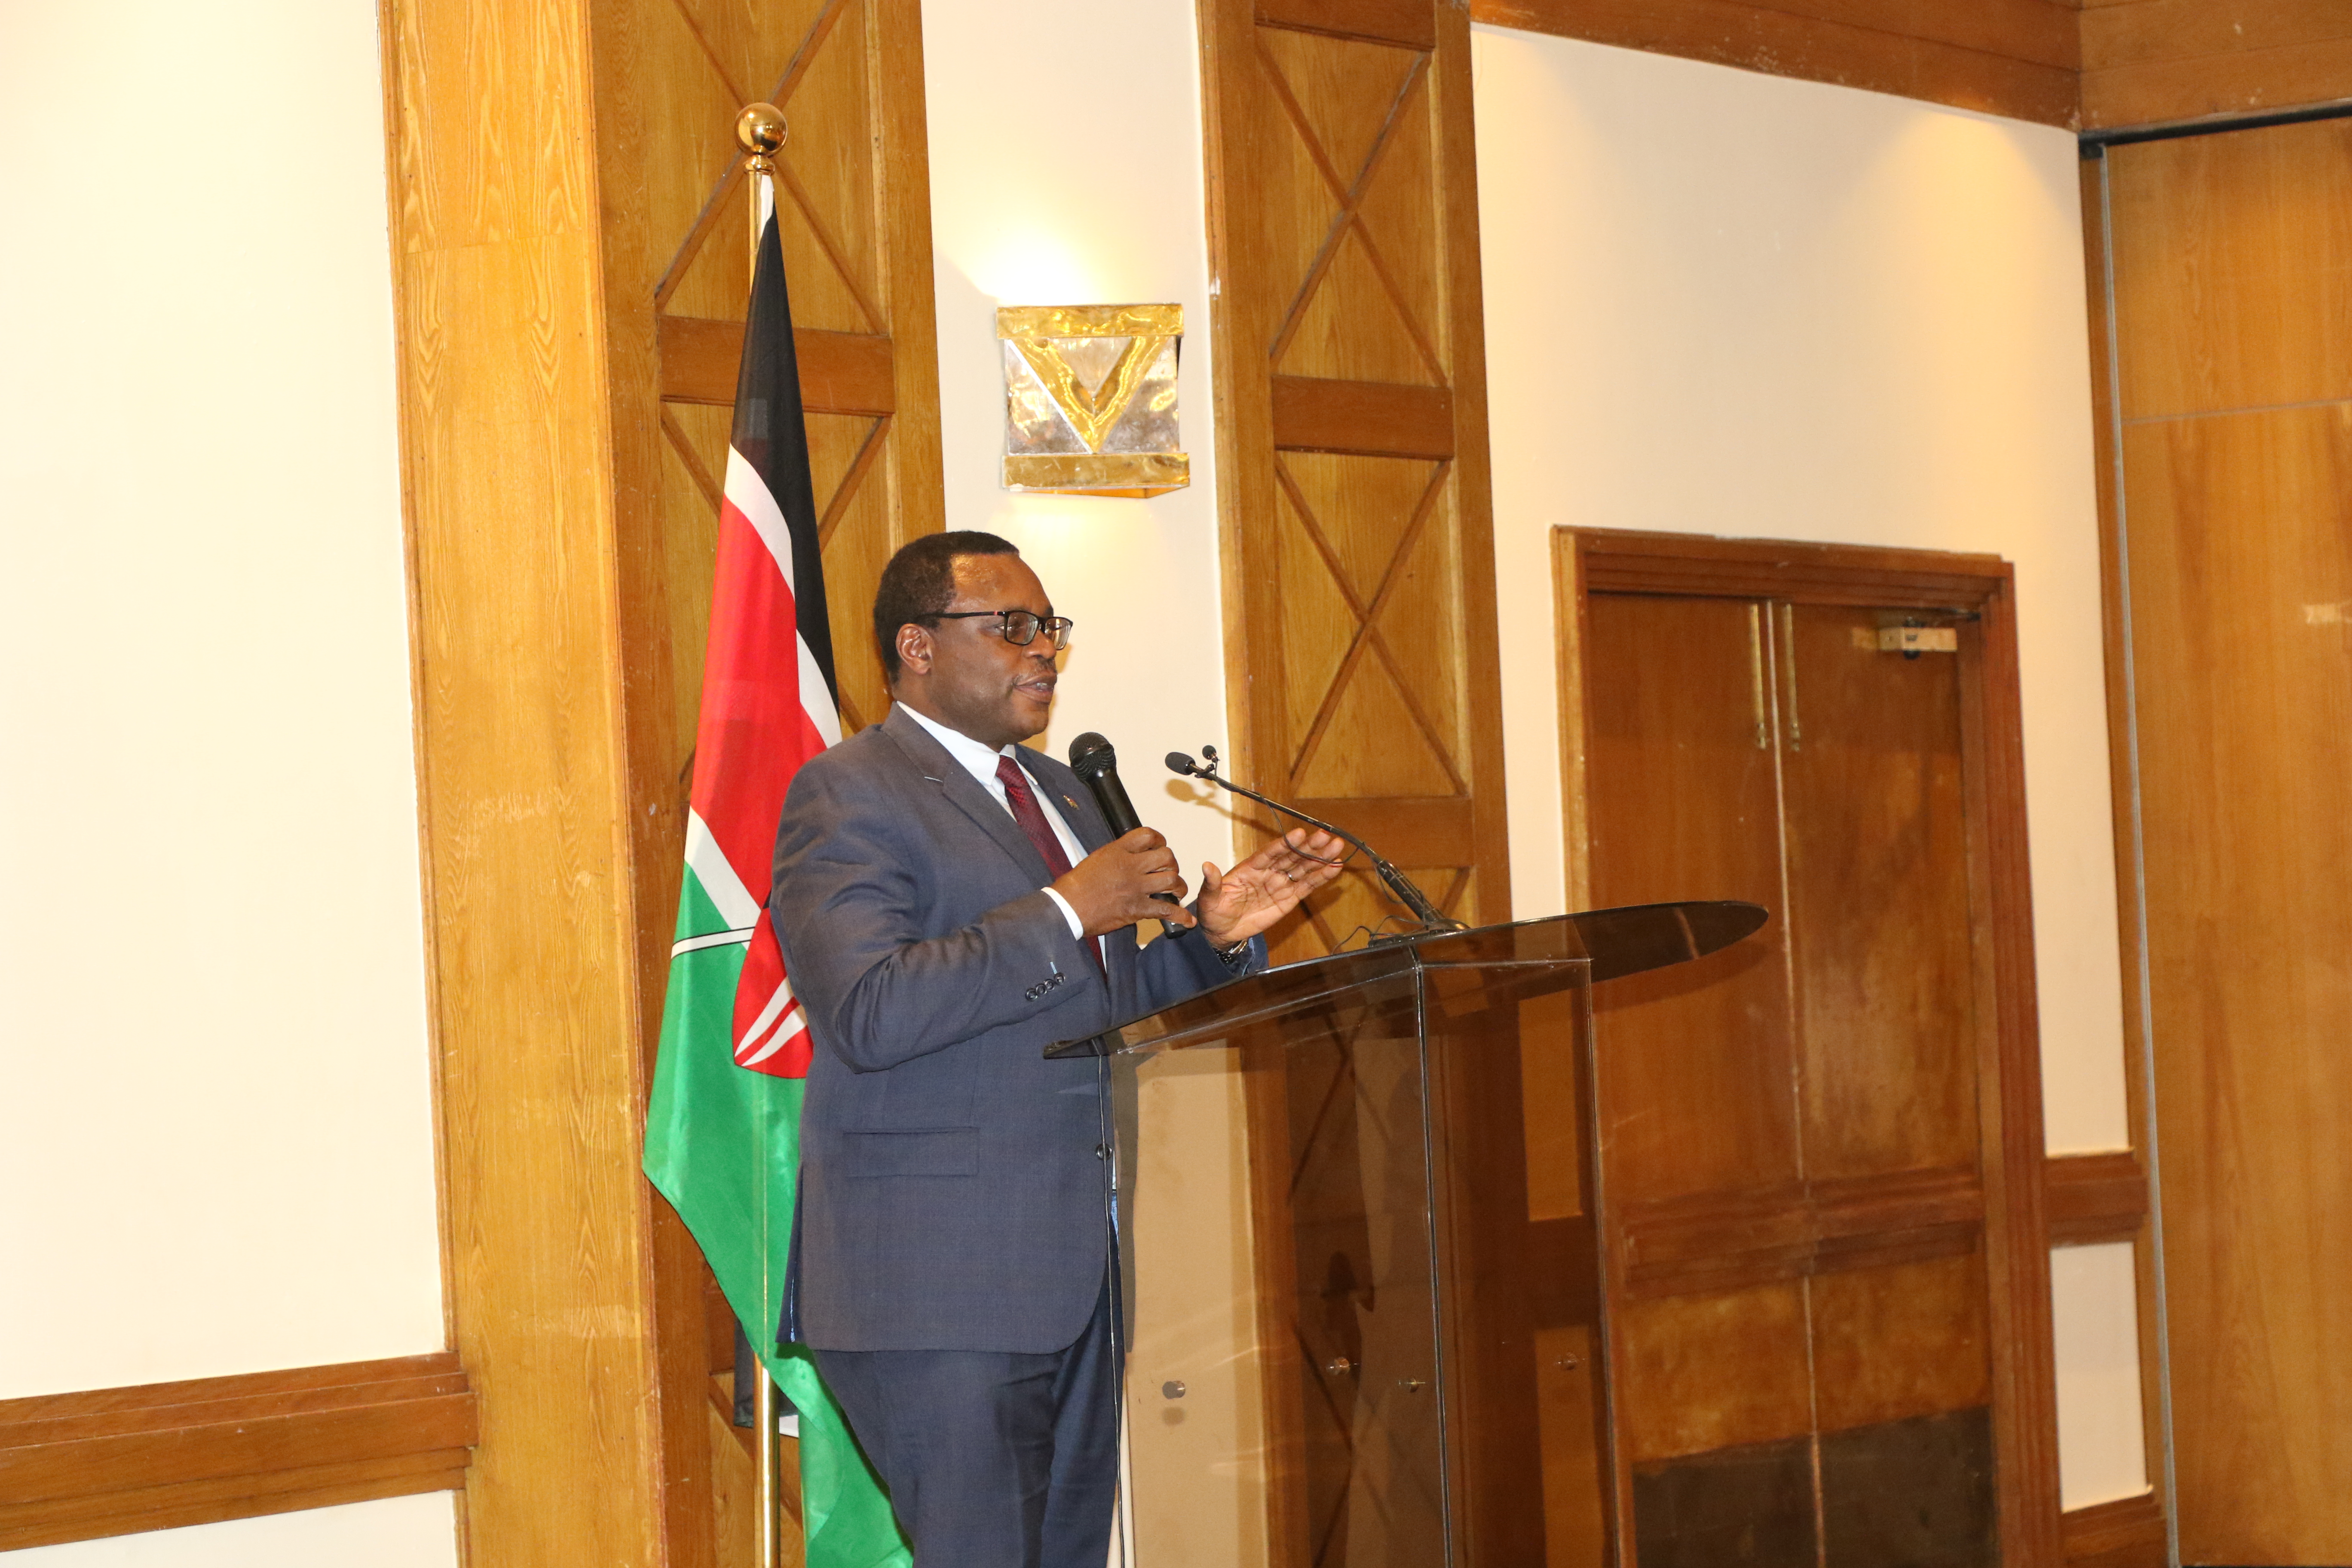 Mr. Lusaka, Senate Speaker of the Republic of Kenya delivers a speech